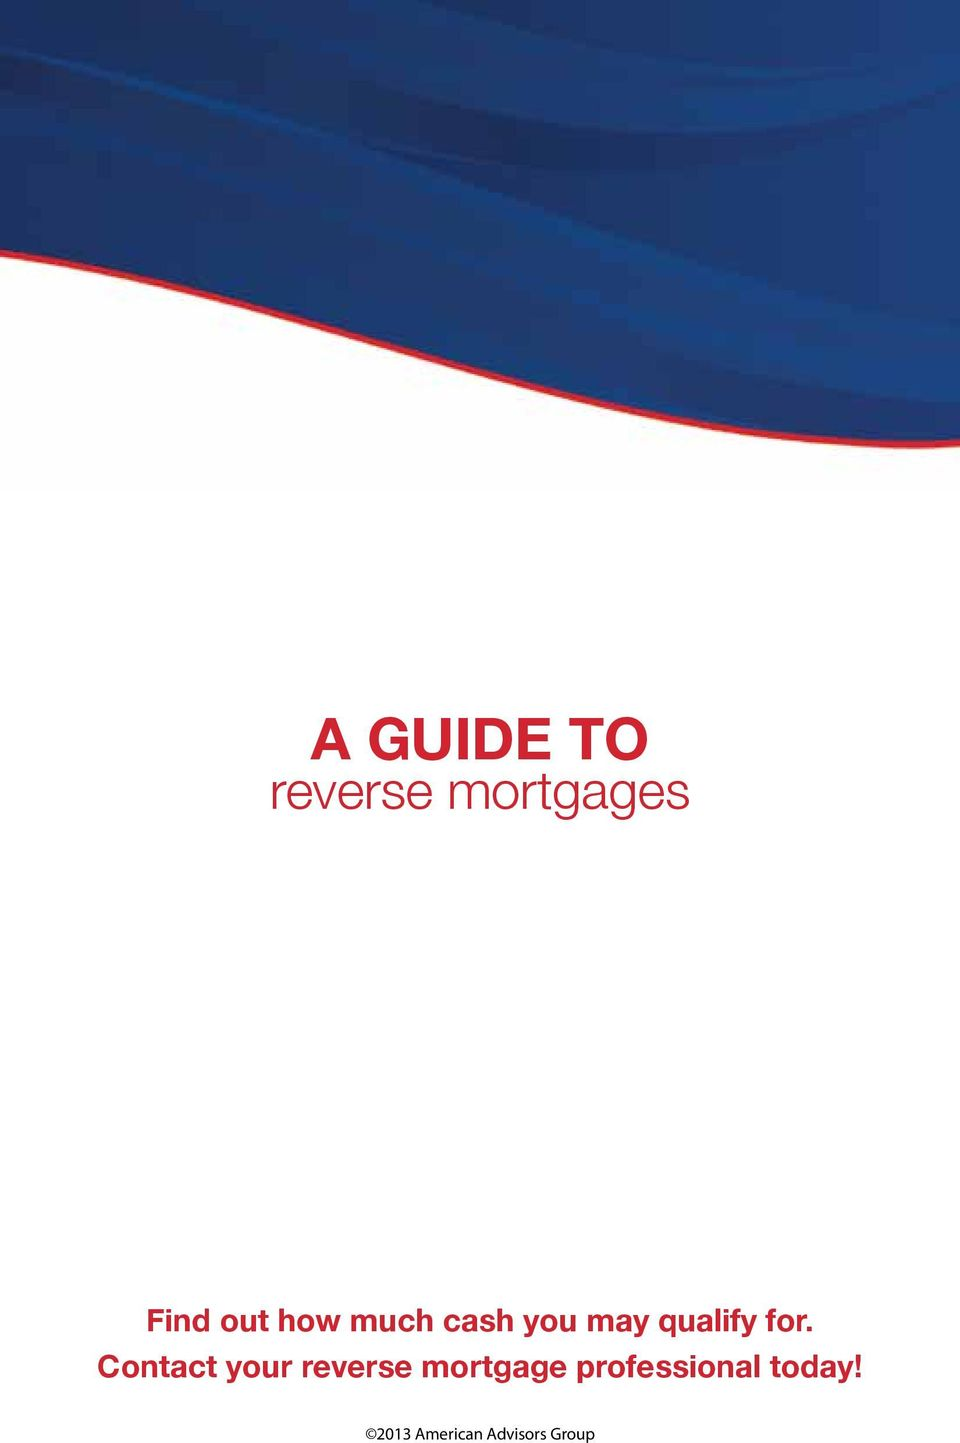 Contact your reverse mortgage